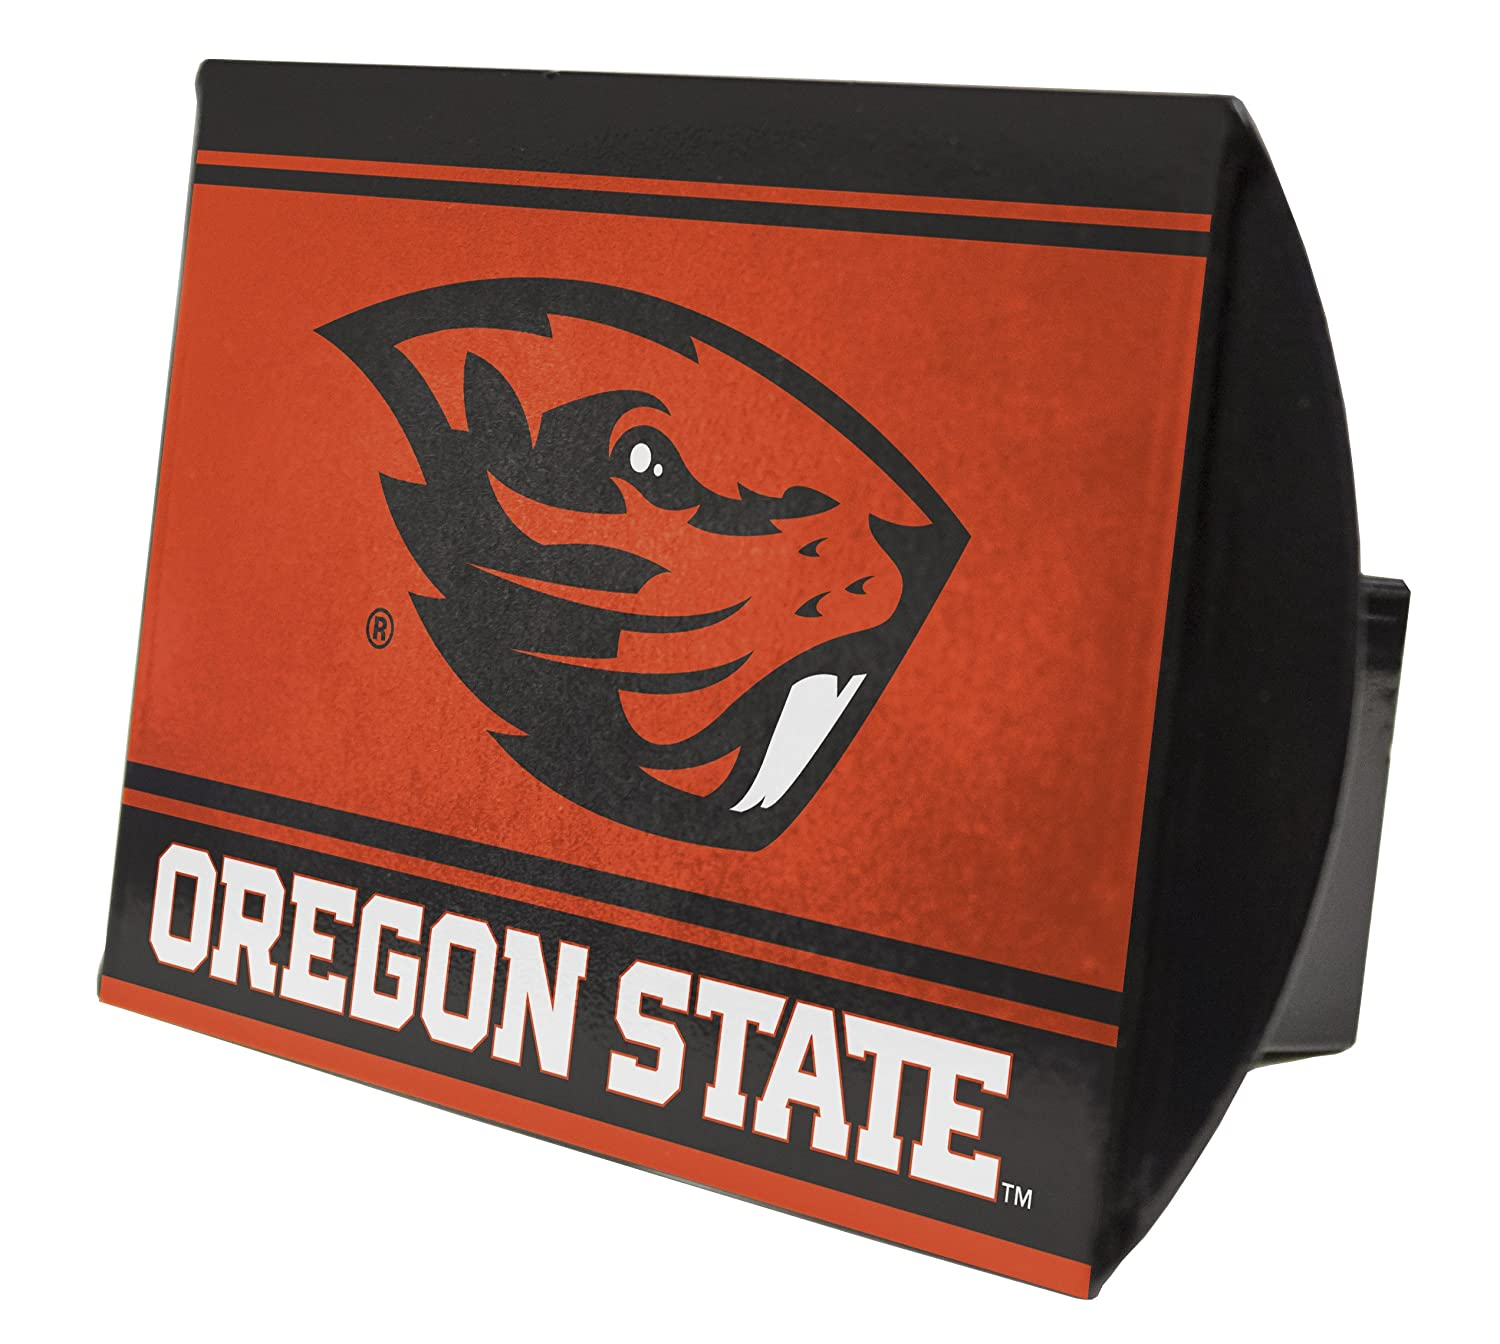 Oregon State BeaversメタルTrailer Hitch cover-oregon State Beavers Hitchカバー   B01H7IOCYM